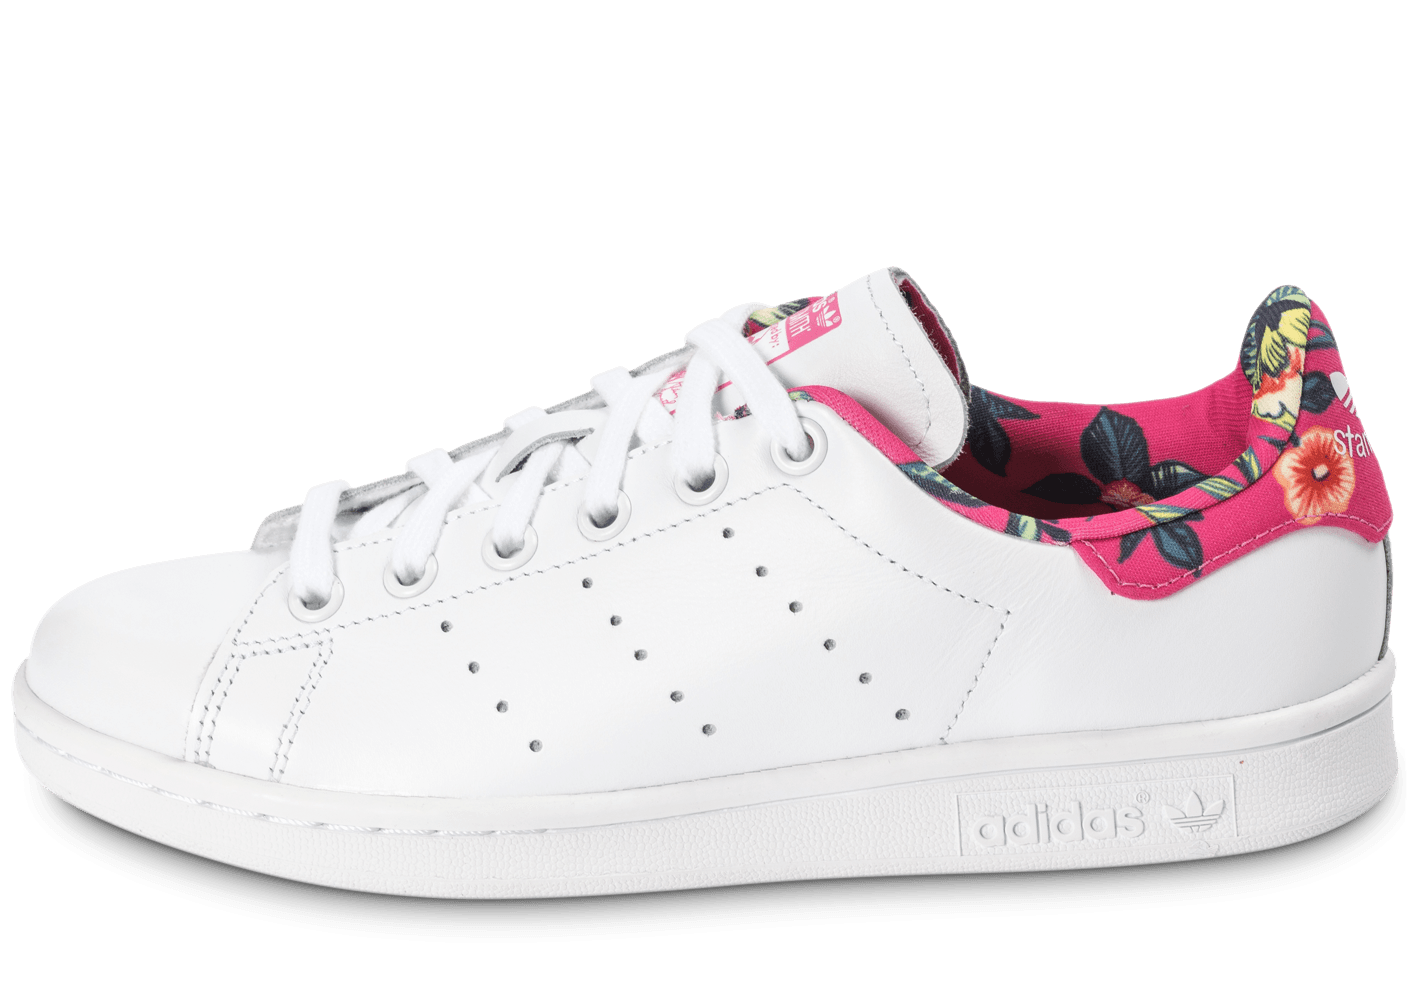 a882c0bc4a2 ... chaussures adidas stan smith floral blanche vue exterieure